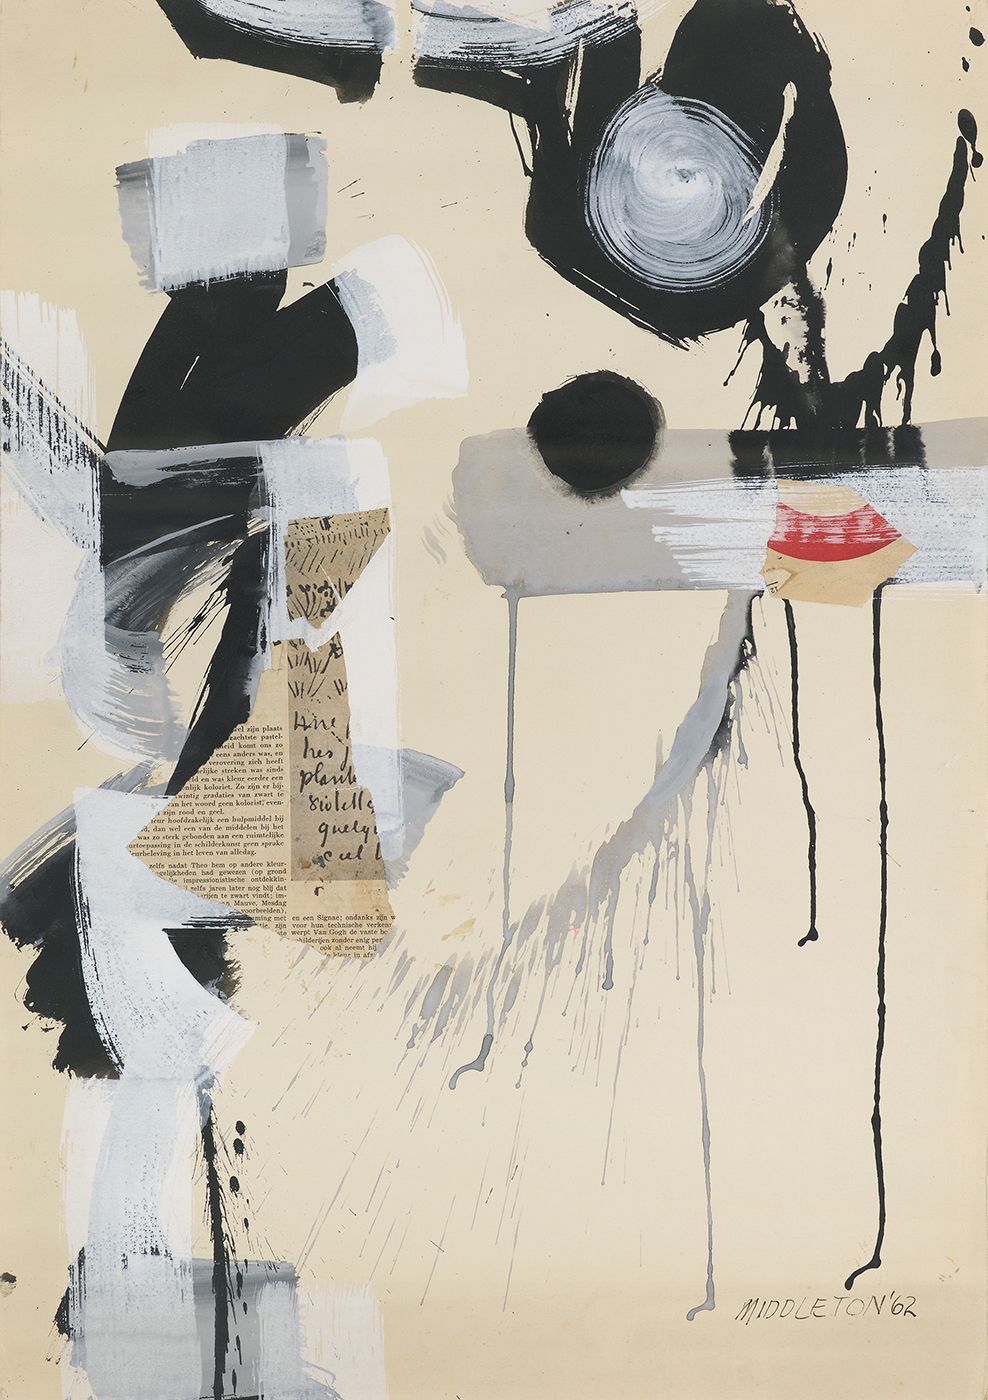 Sam Middleton, Cymbals, 1962,  Mixed media and collage on paper,  25-1/4 X 17-3/4,  Signed and dated lower right. Mixed media abstract work with newspaper, black and white splattered paint. Sam Middleton was one of the leading 20th-century American artists, and is a mixed-media collage artist.